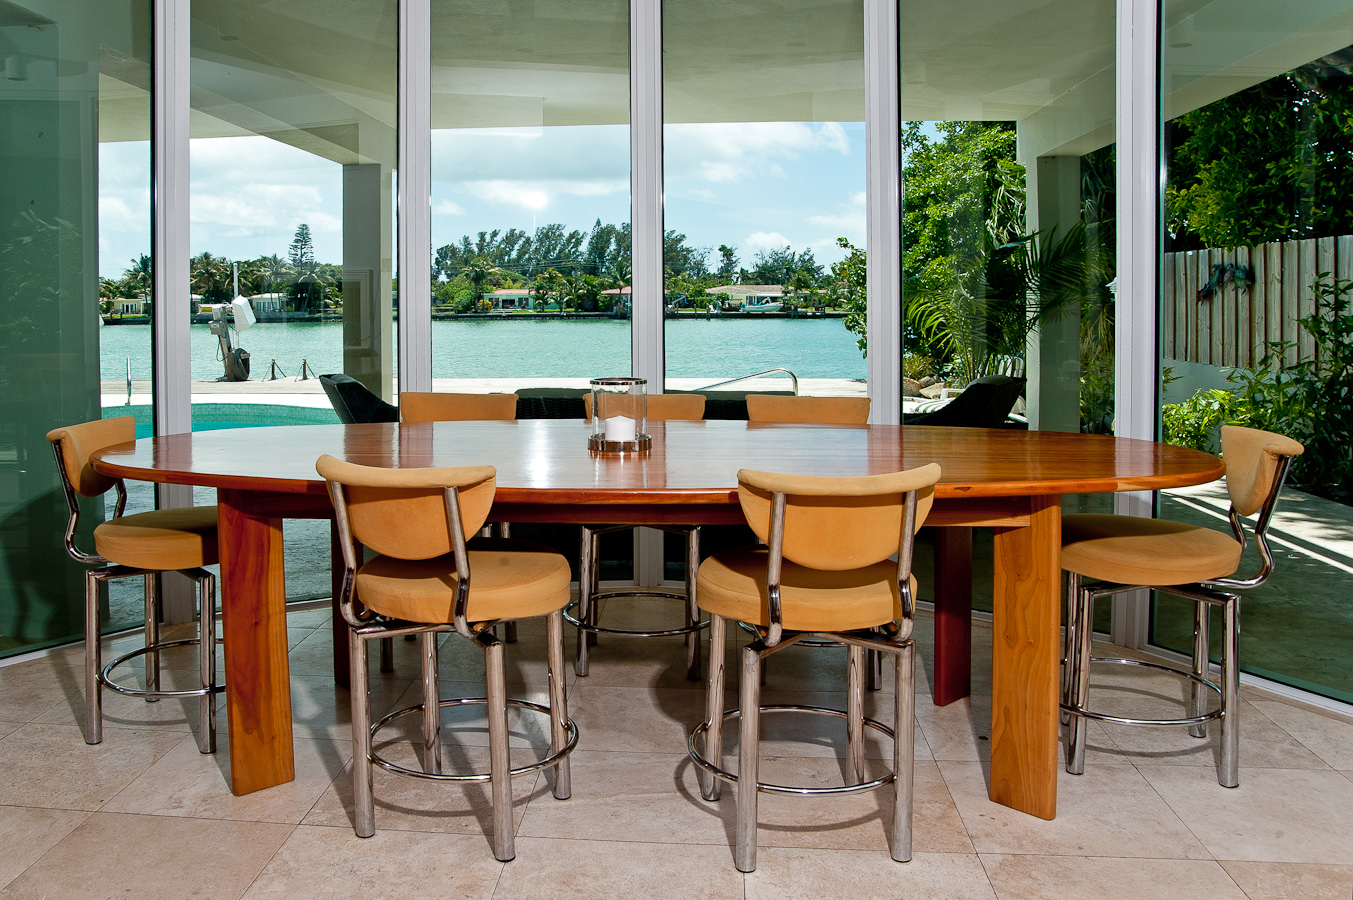 14 kitchen-table-to-pool